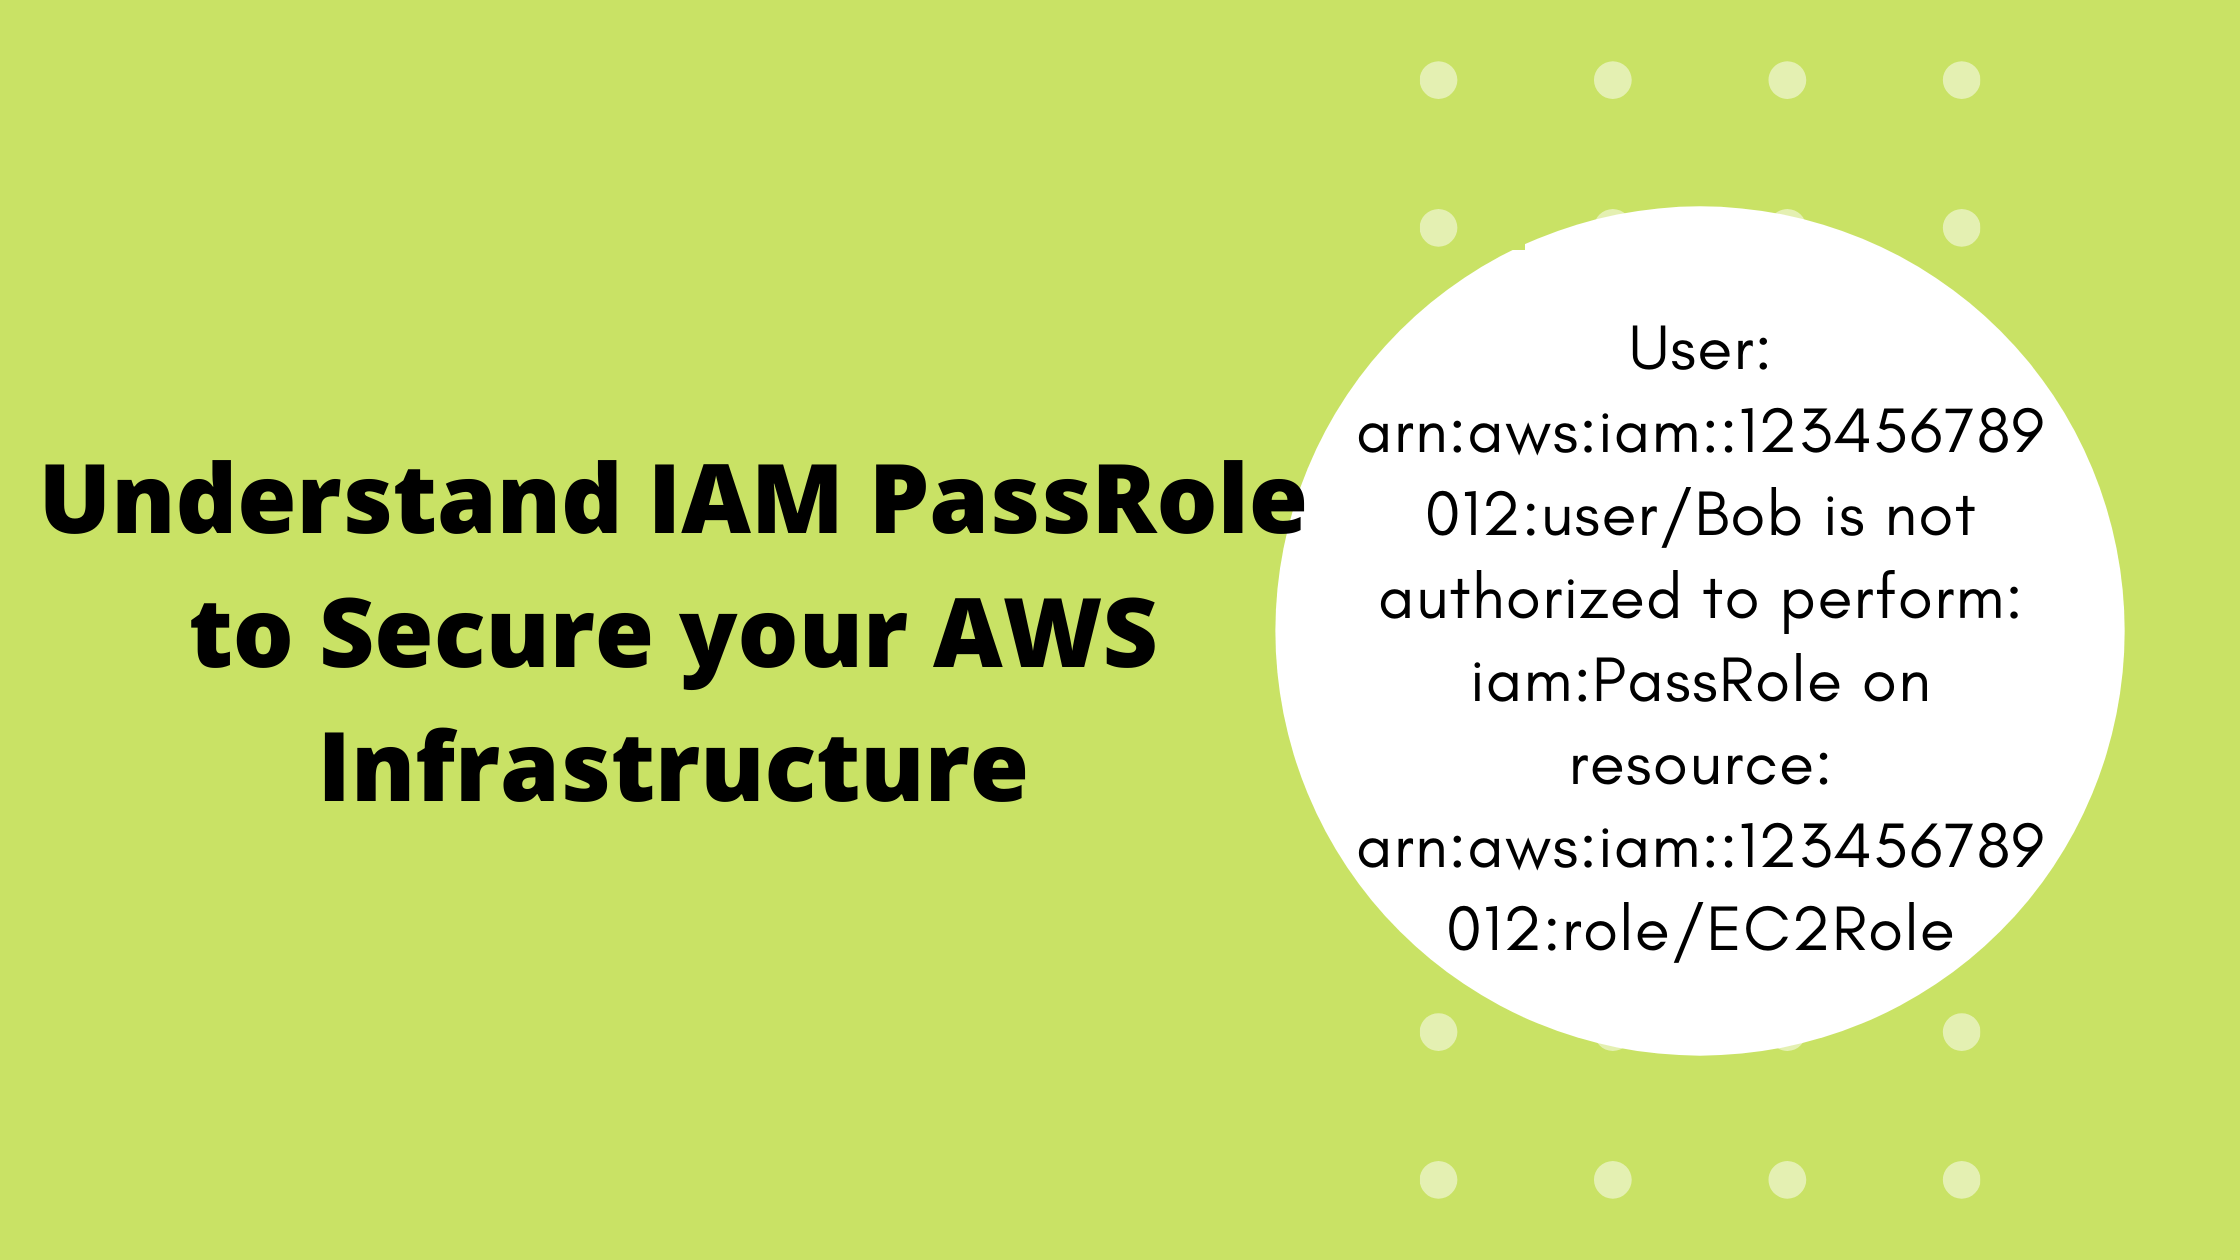 Understand IAM PassRole to Secure your AWS Infrastructure